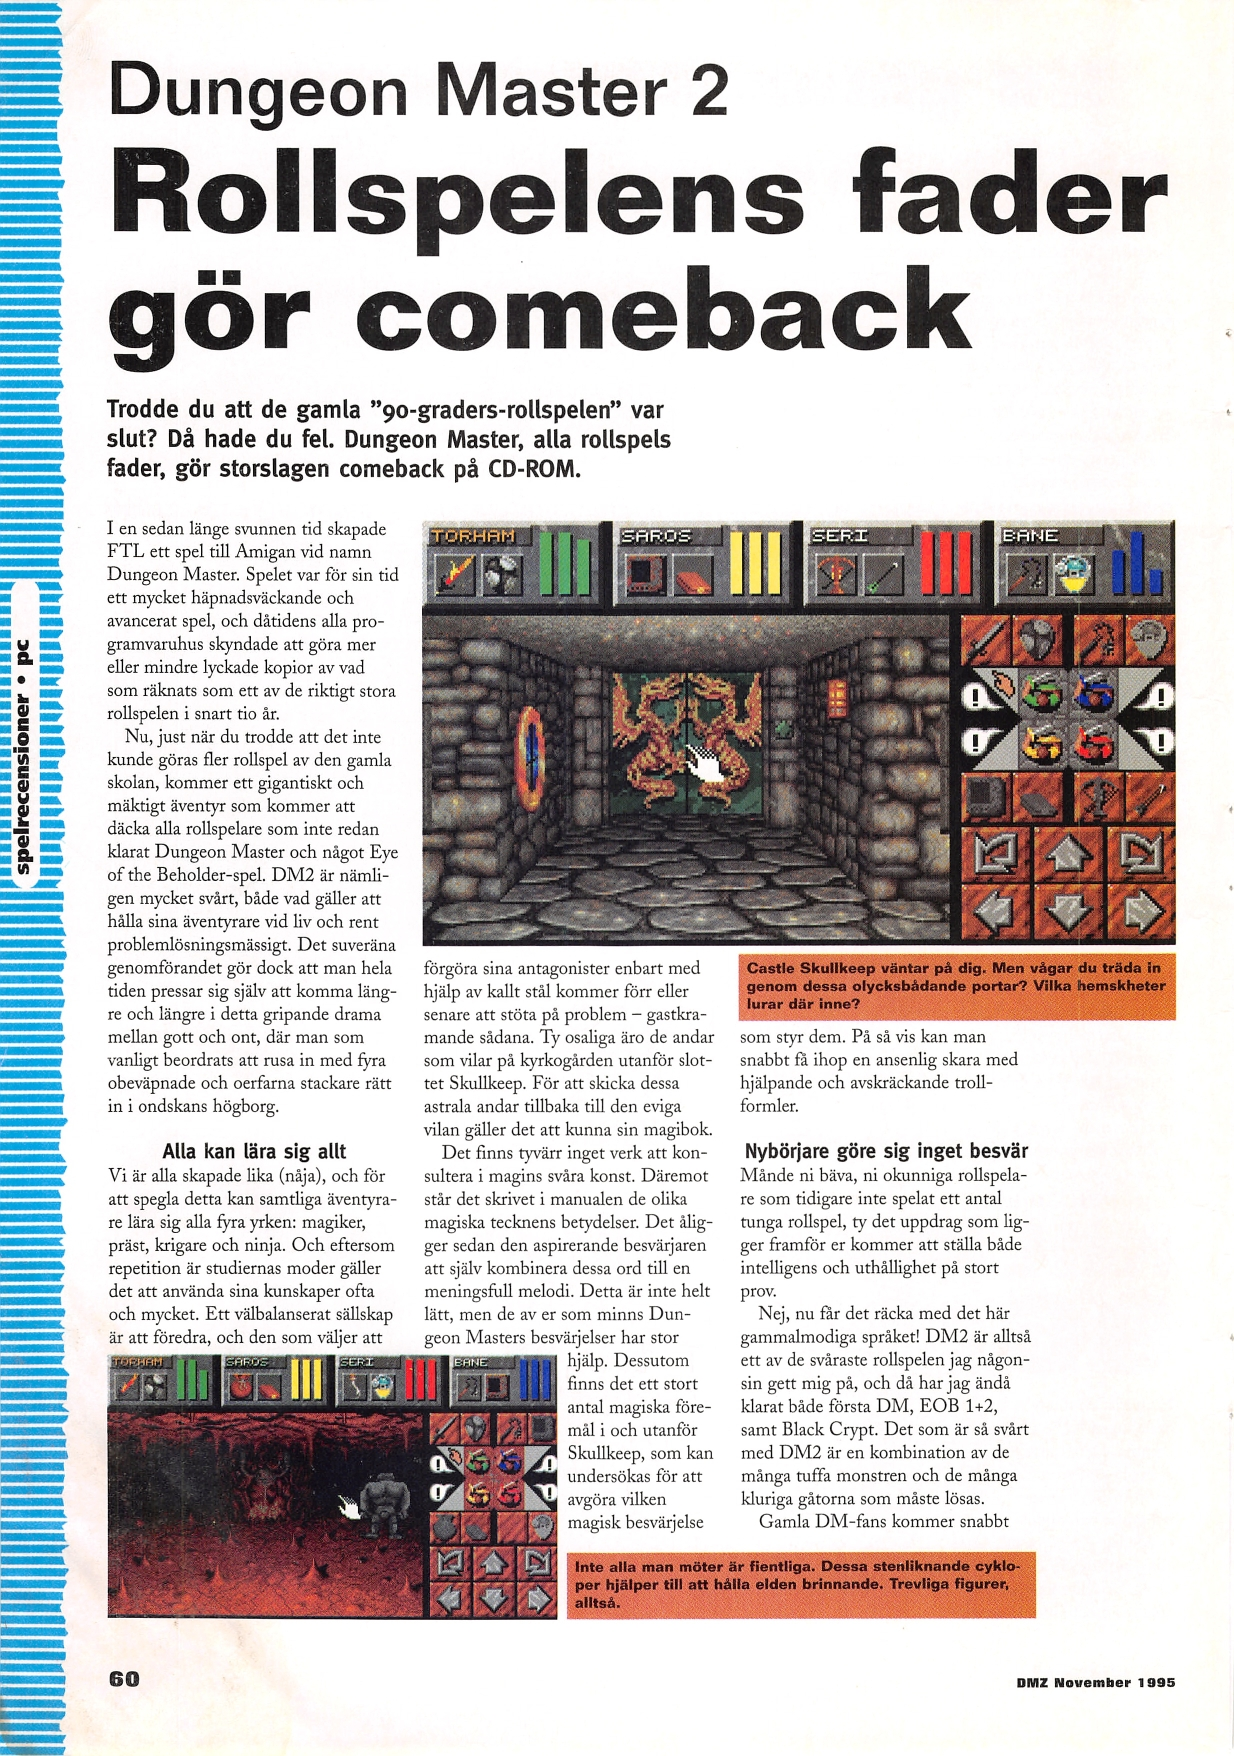 Dungeon Master II for Amiga Review published in Swedish magazine 'Datormagazin', Vol 1995 No 14 November 1995, Page 60